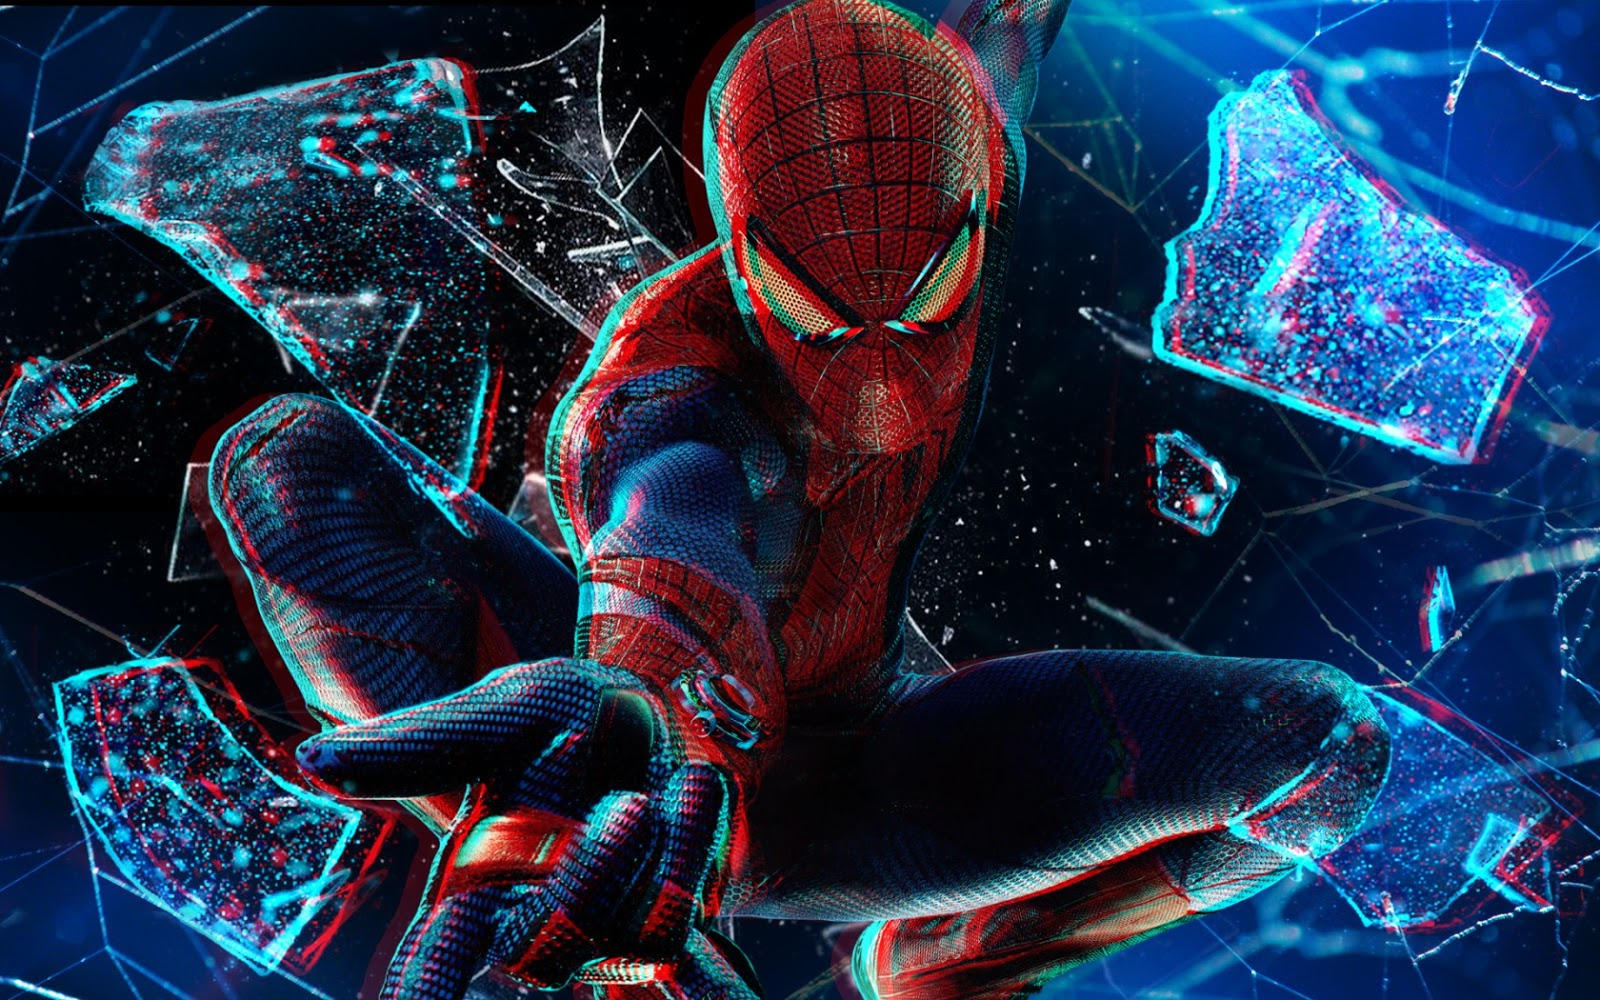 wallpapers hd for mac: the amazing spider man 4 wallpaper